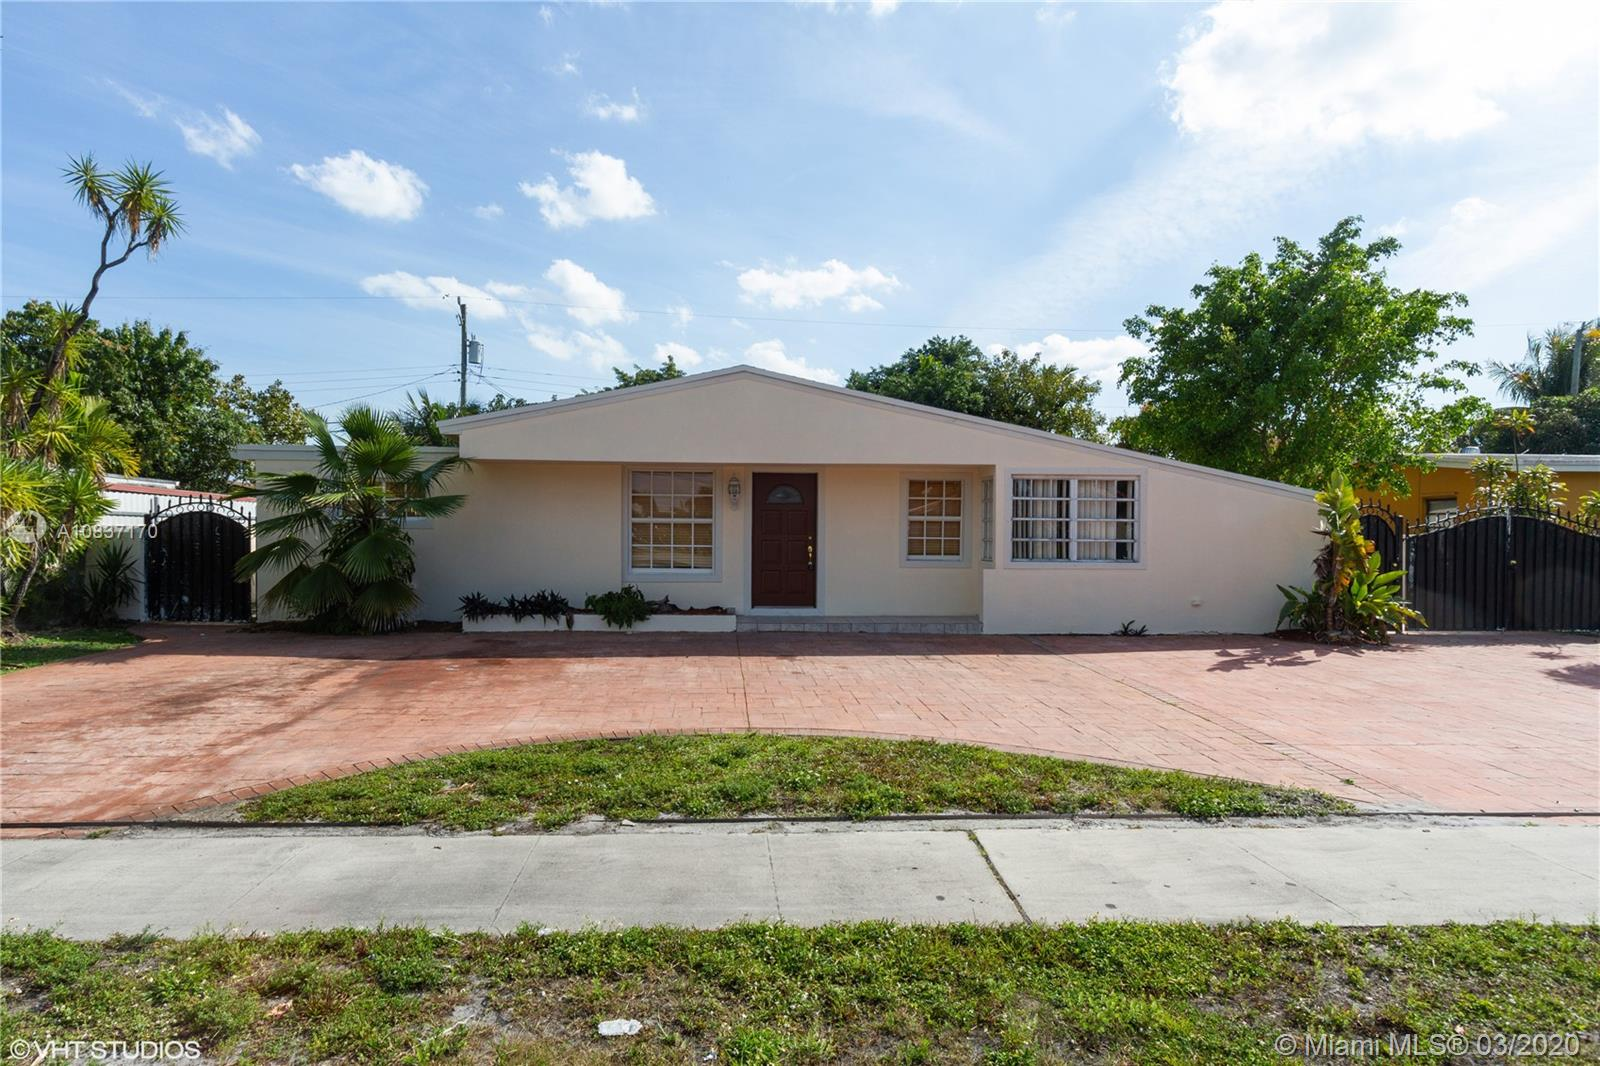 1230 W 64th Ter, Hialeah, FL 33012